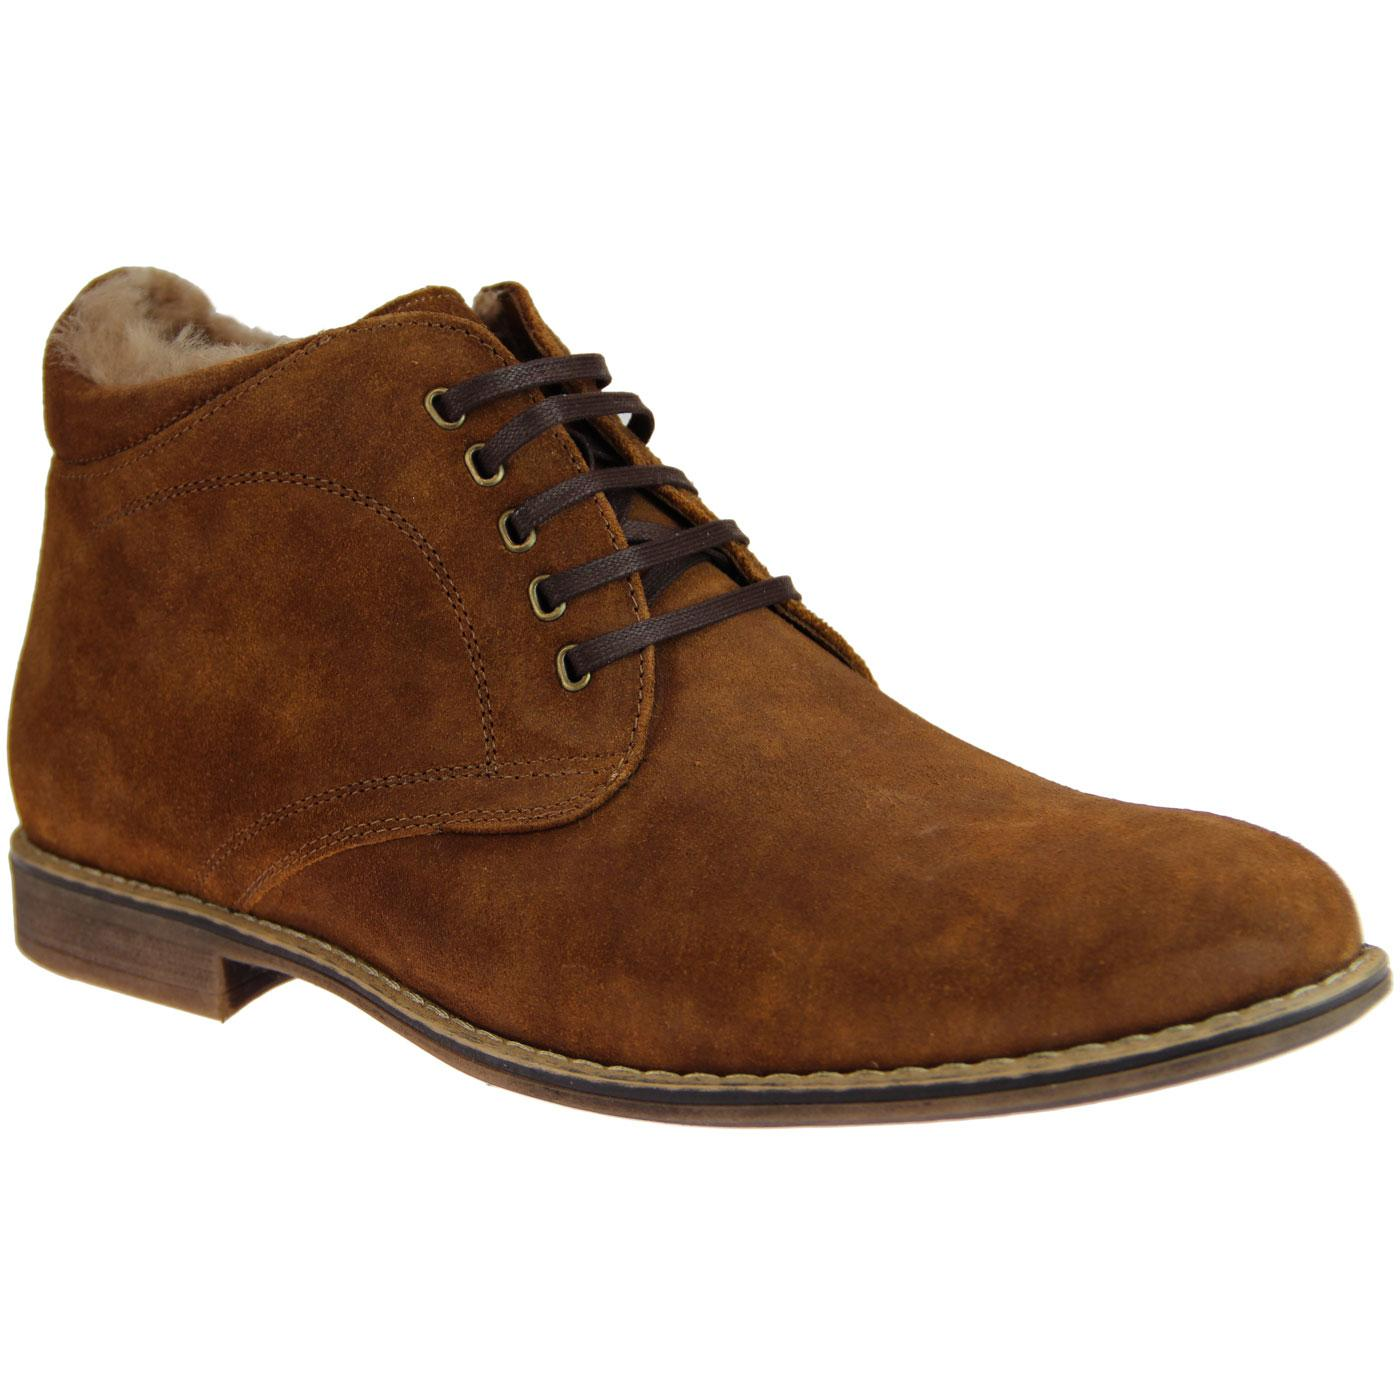 LACUZZO Retro Fur Lined Side Zip Suede Boots BROWN